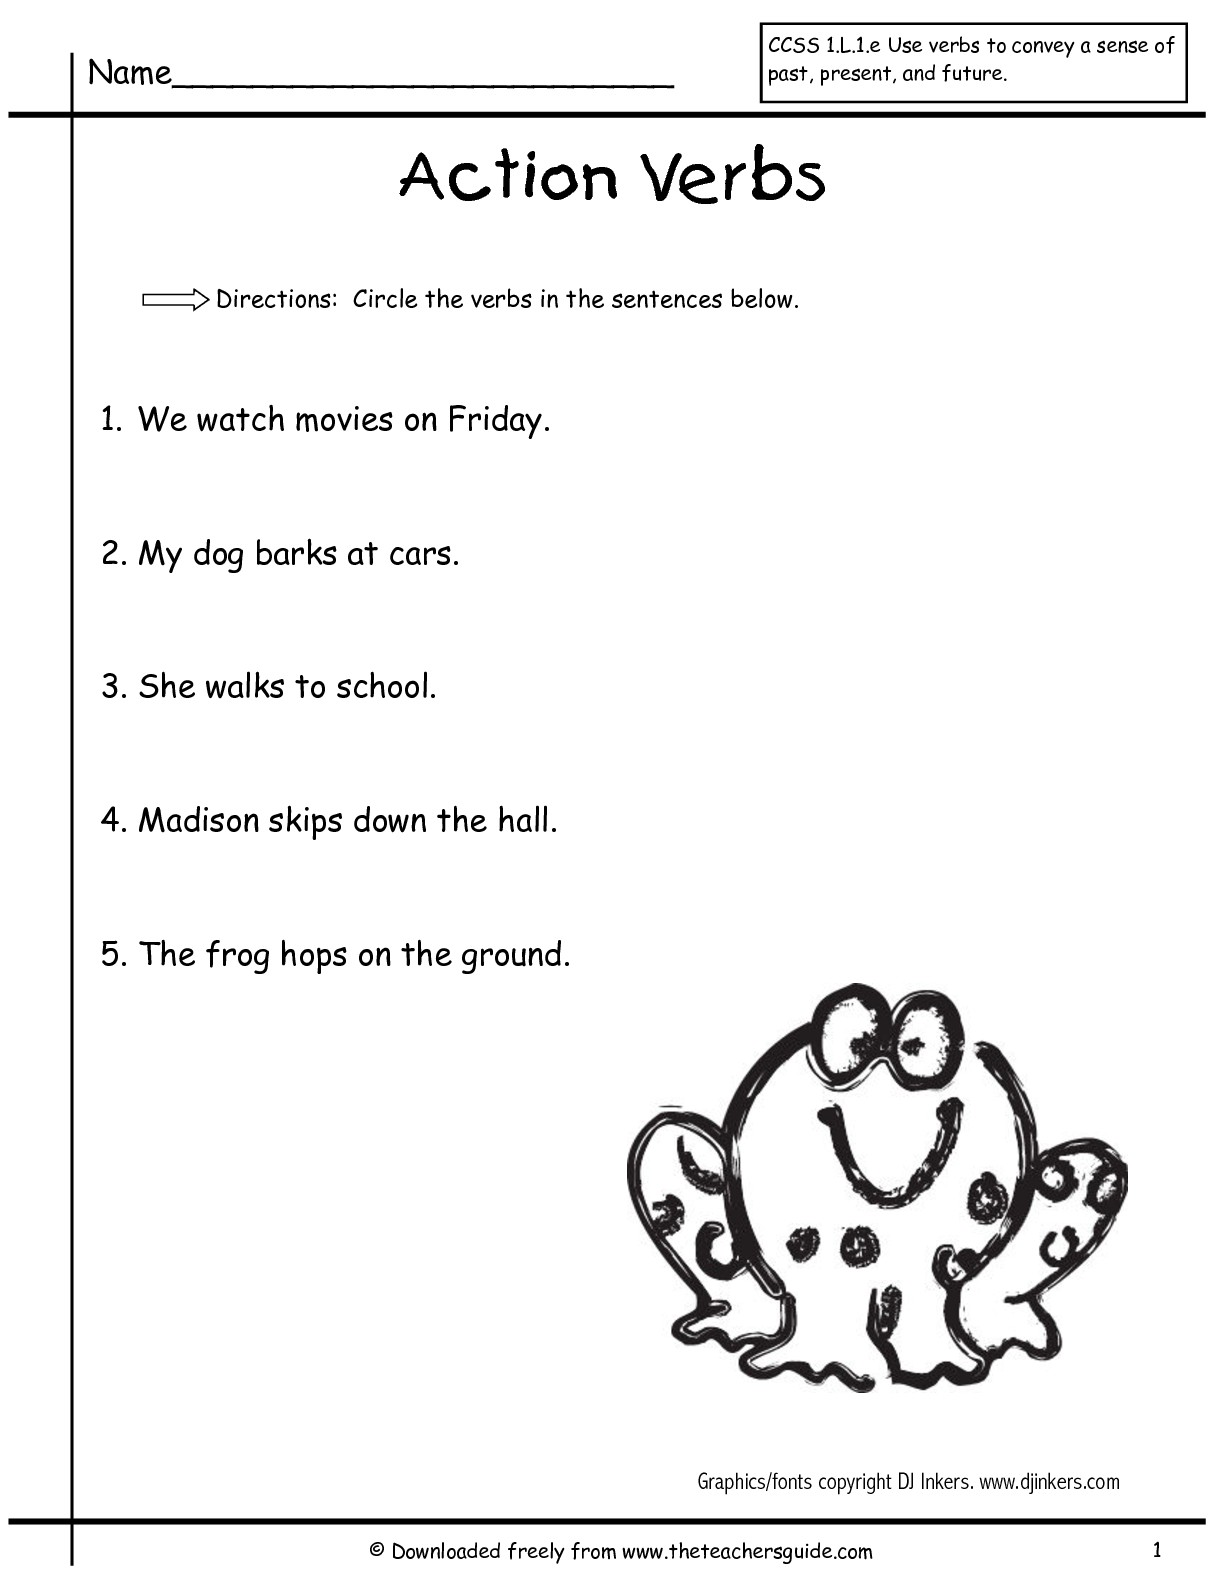 Verbs Worksheets 1st Grade The Best Worksheets Image Collection